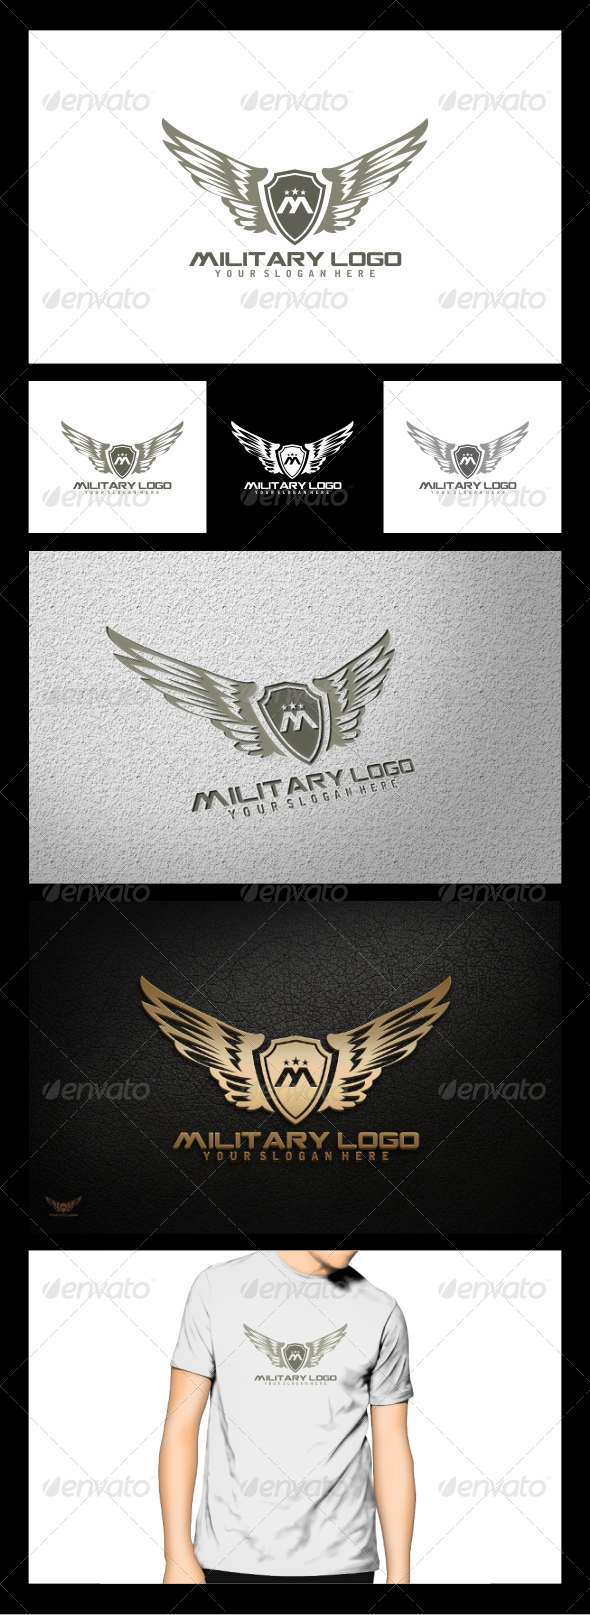 military logo template graphicriver. Black Bedroom Furniture Sets. Home Design Ideas